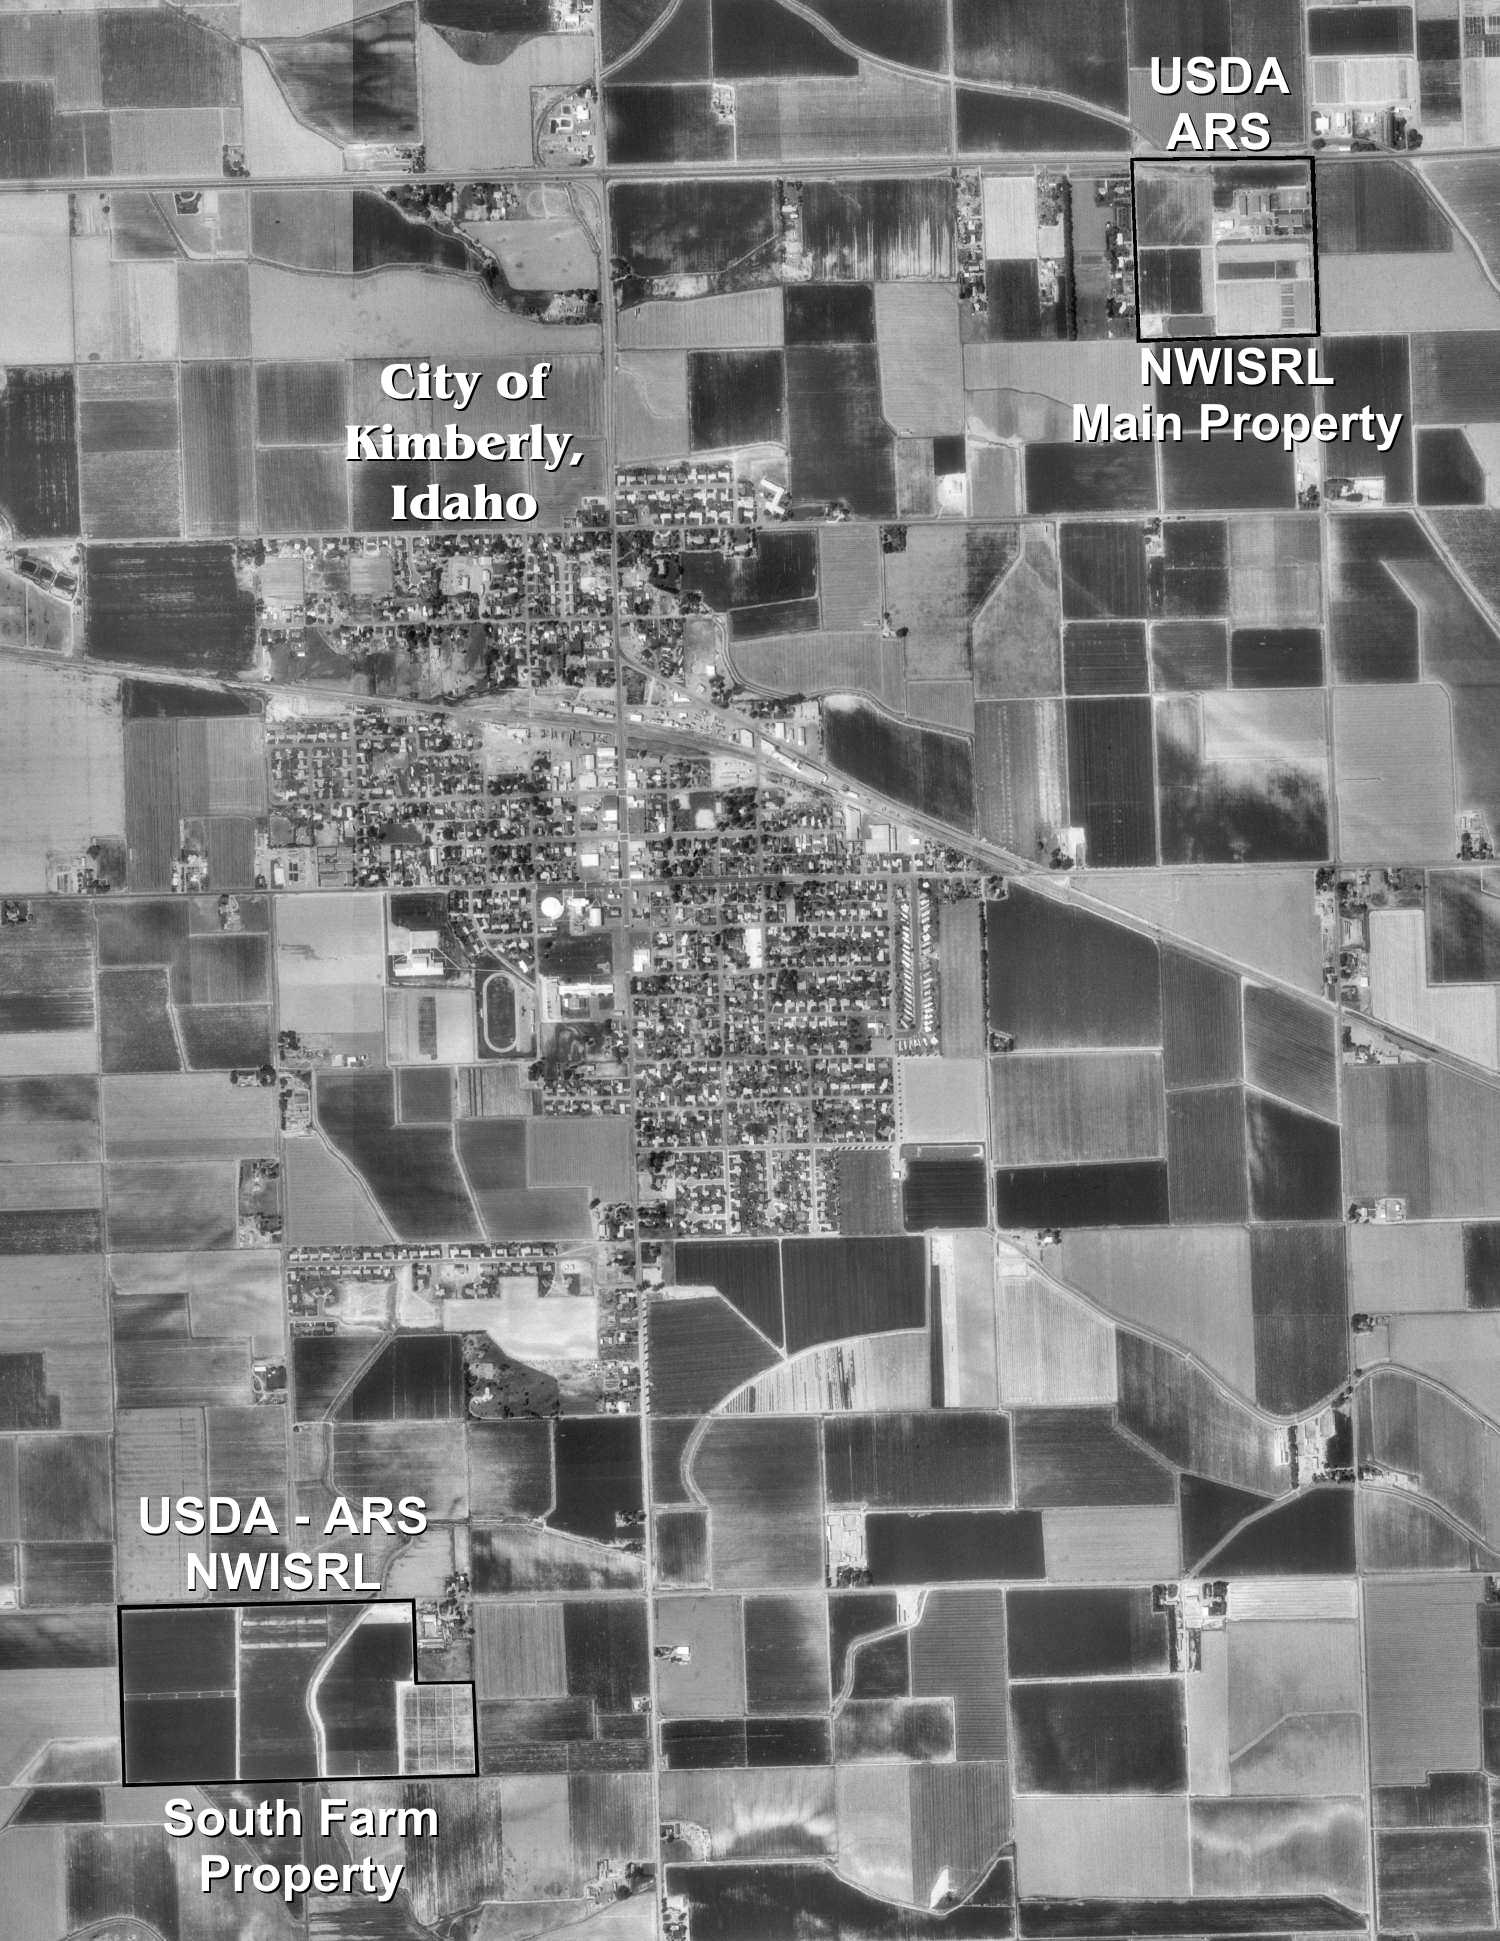 Satellite view of area showing NWISRL main lab and South Farm